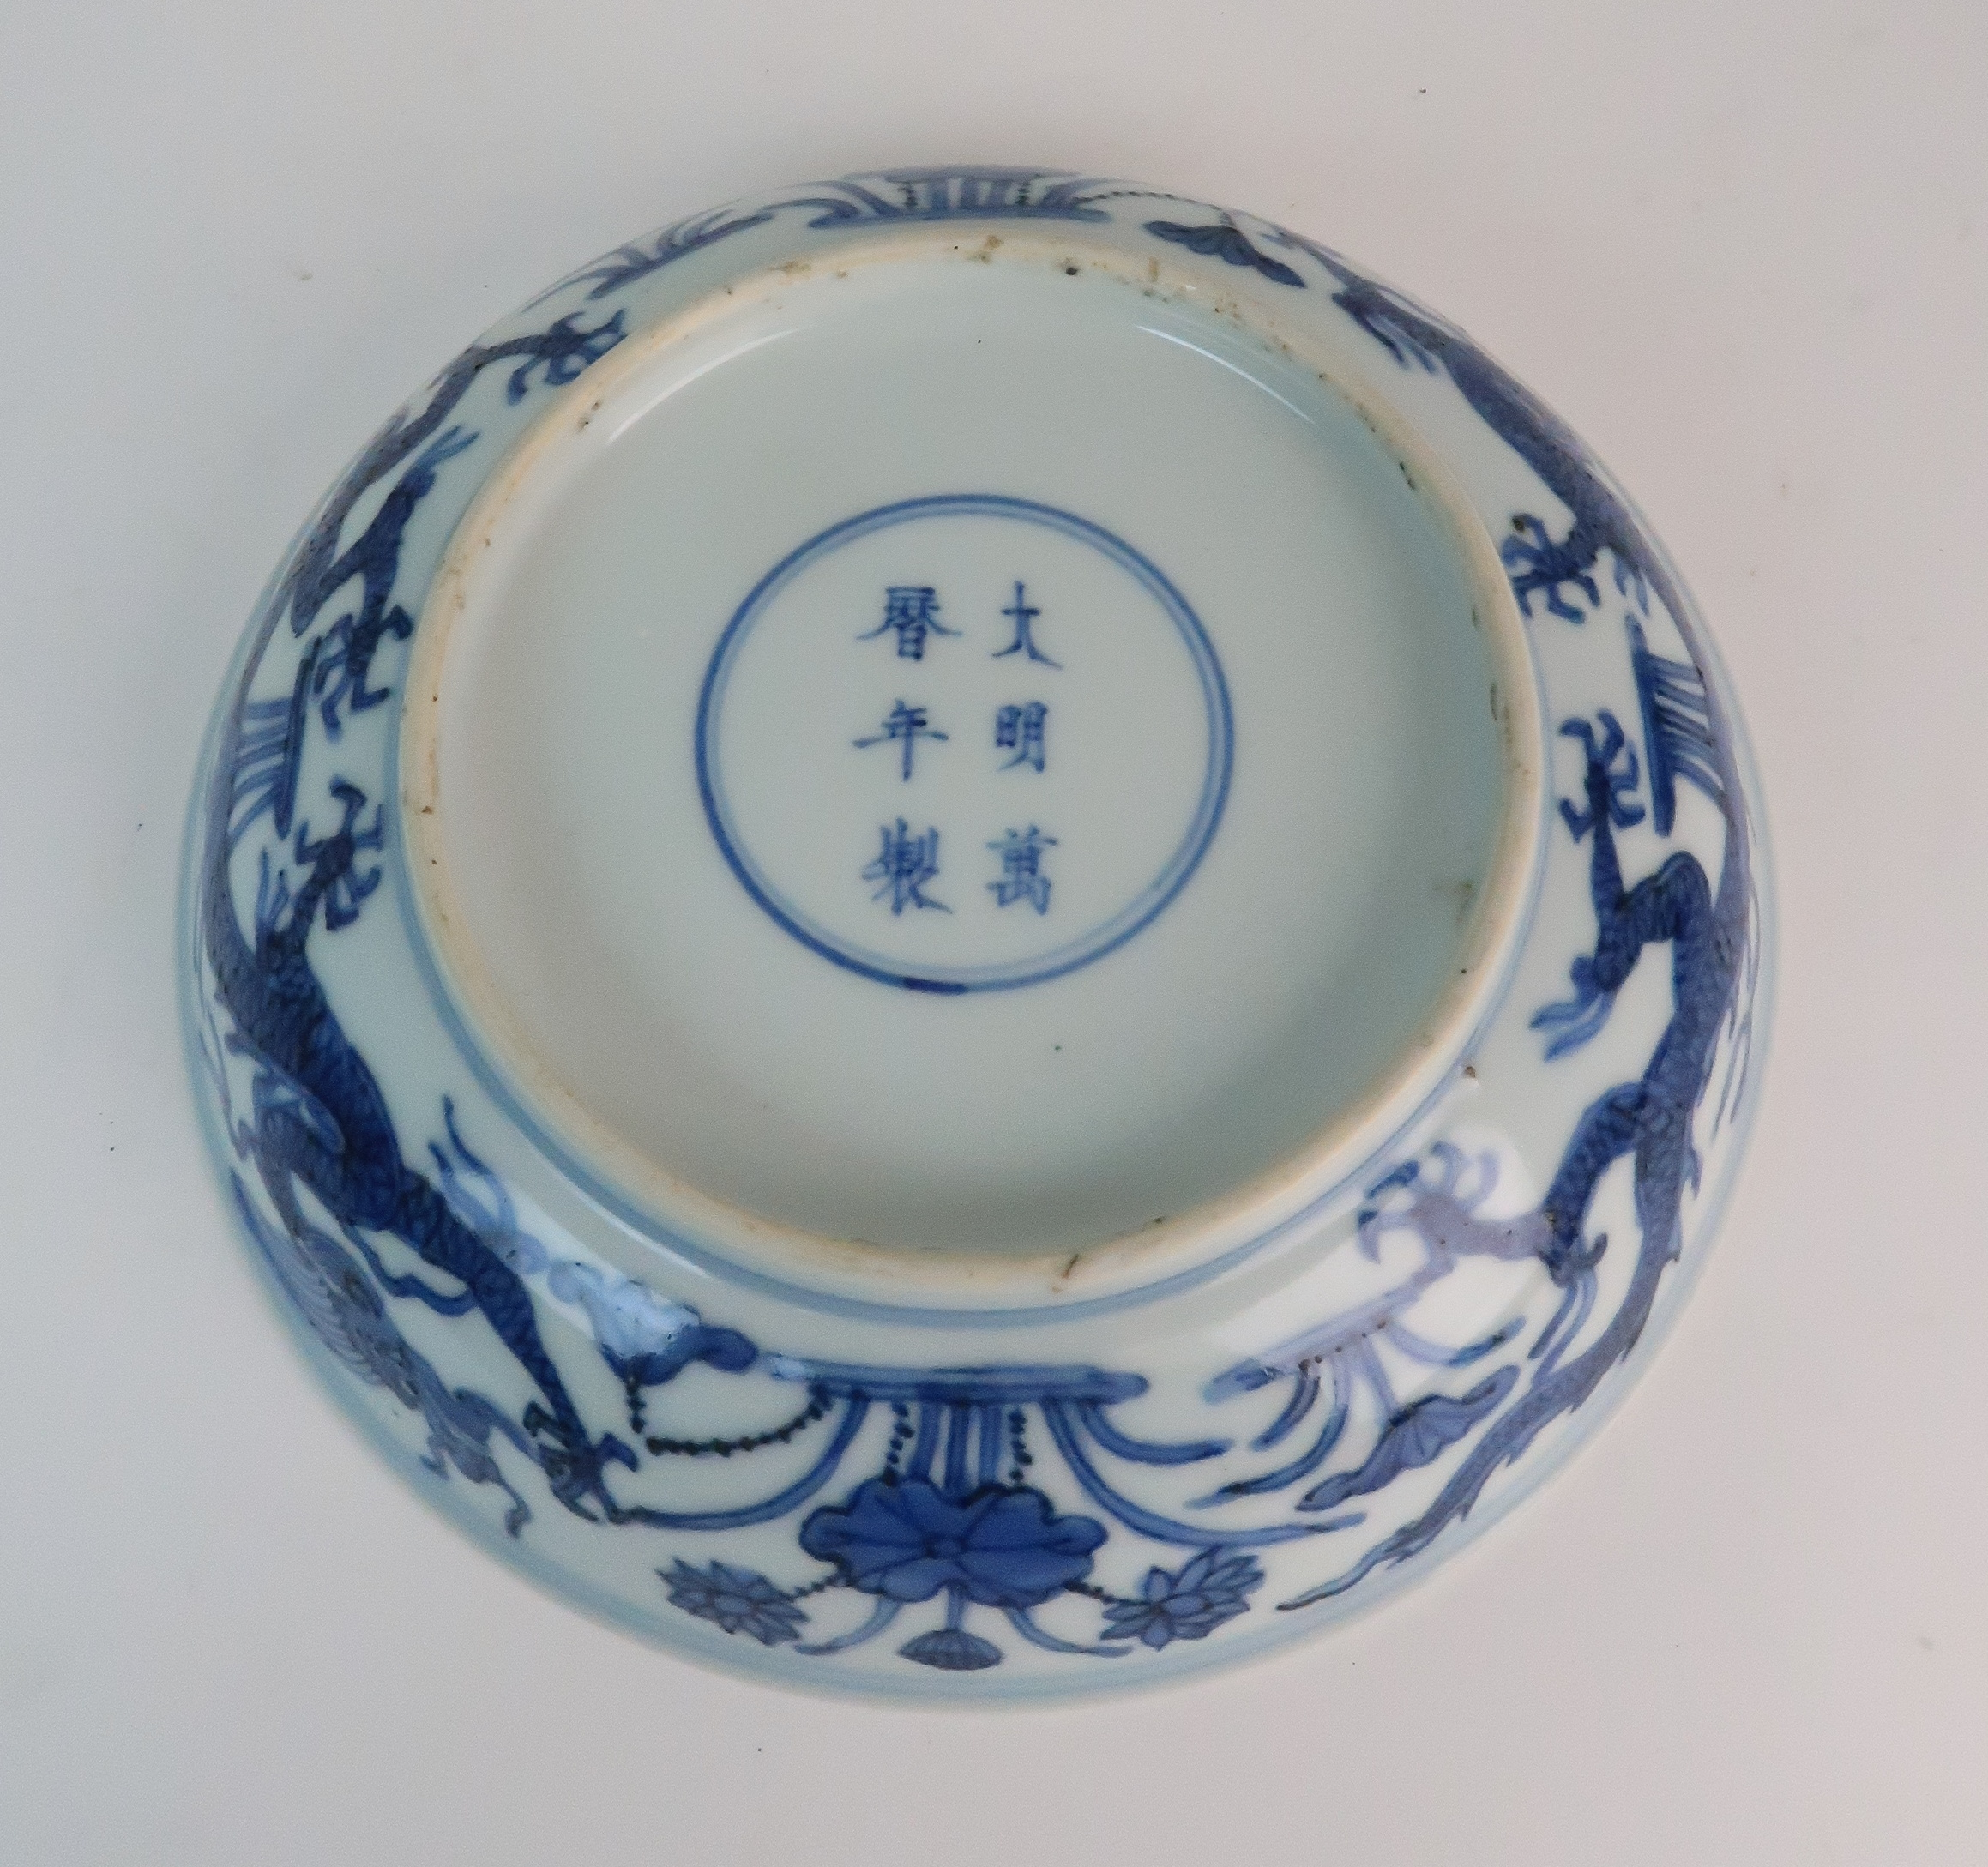 A CHINESE BLUE AND WHITE DISH painted with dragons amongst aquatic foliage, within a scrolling - Image 5 of 6